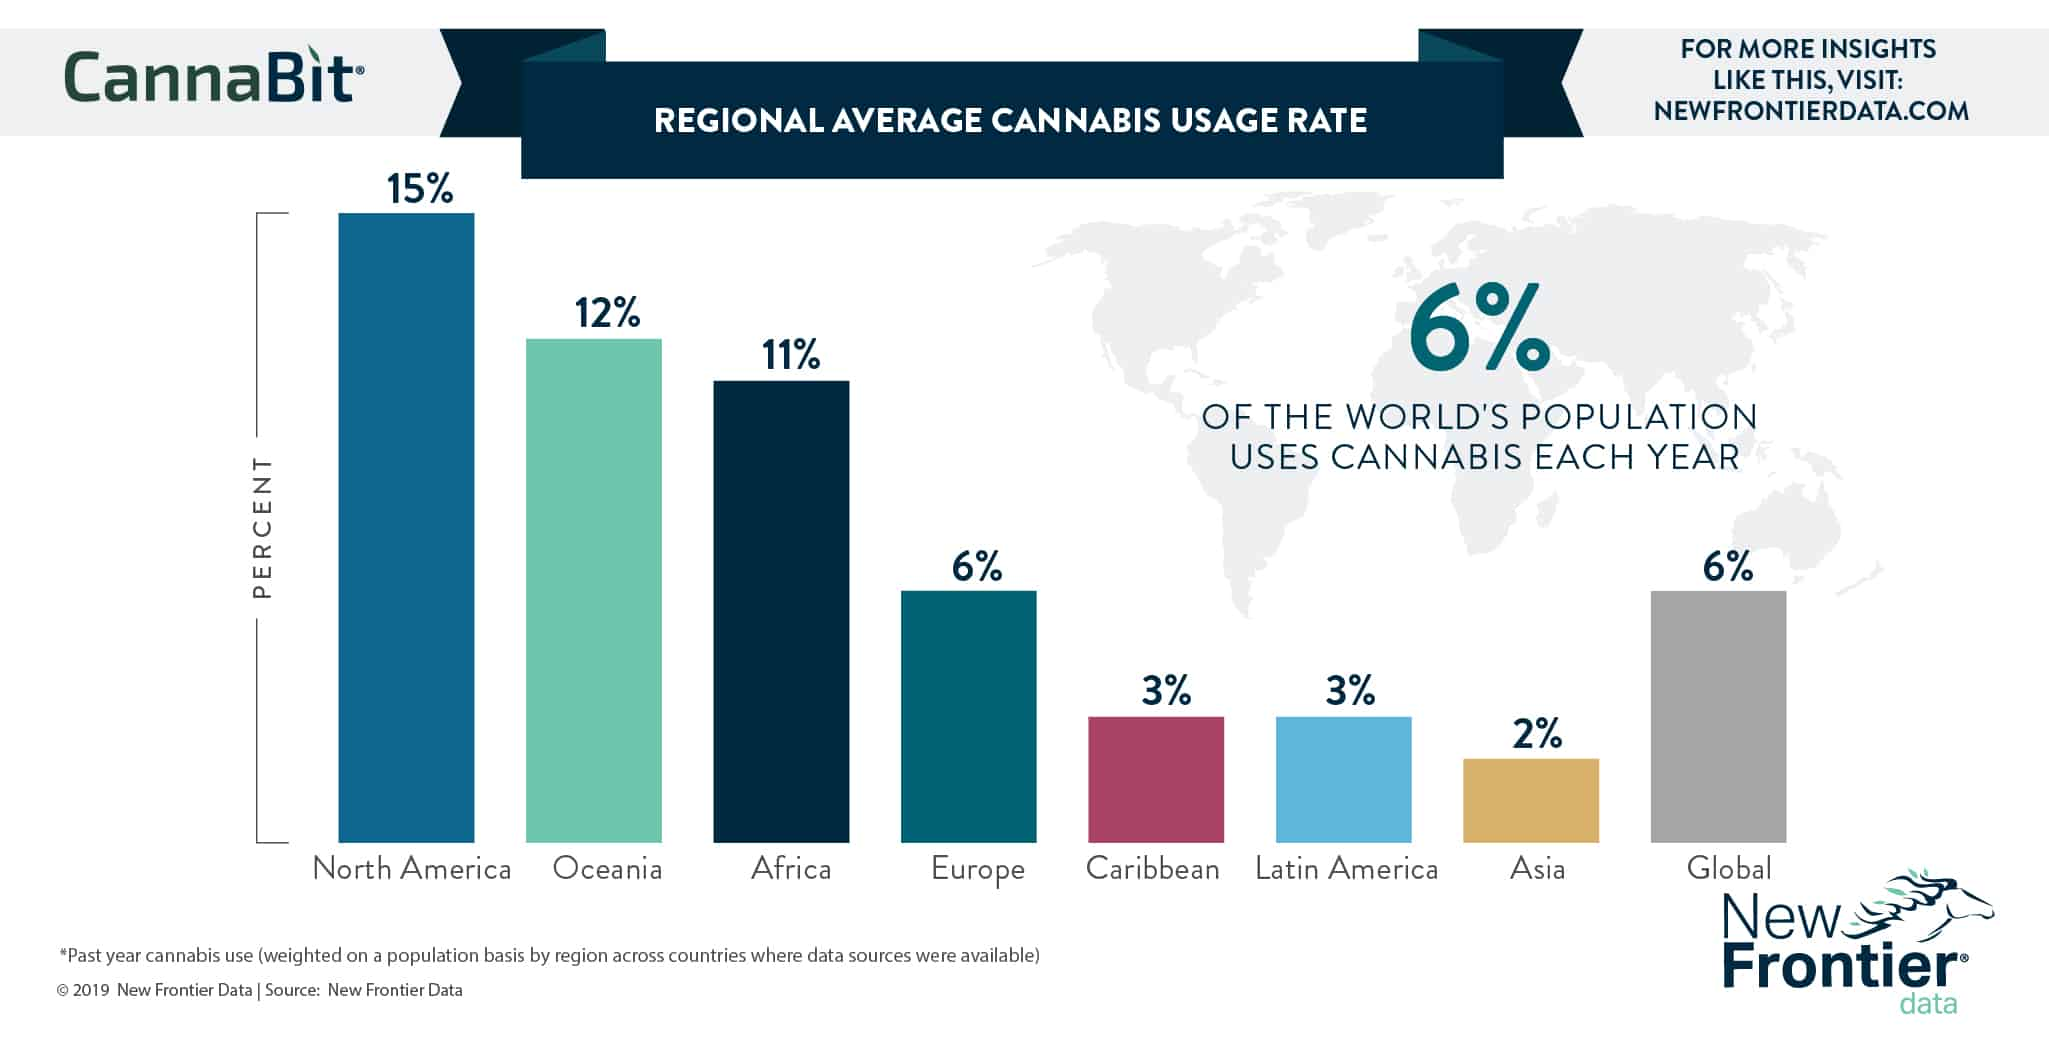 Regional Cannabis Usage Rate